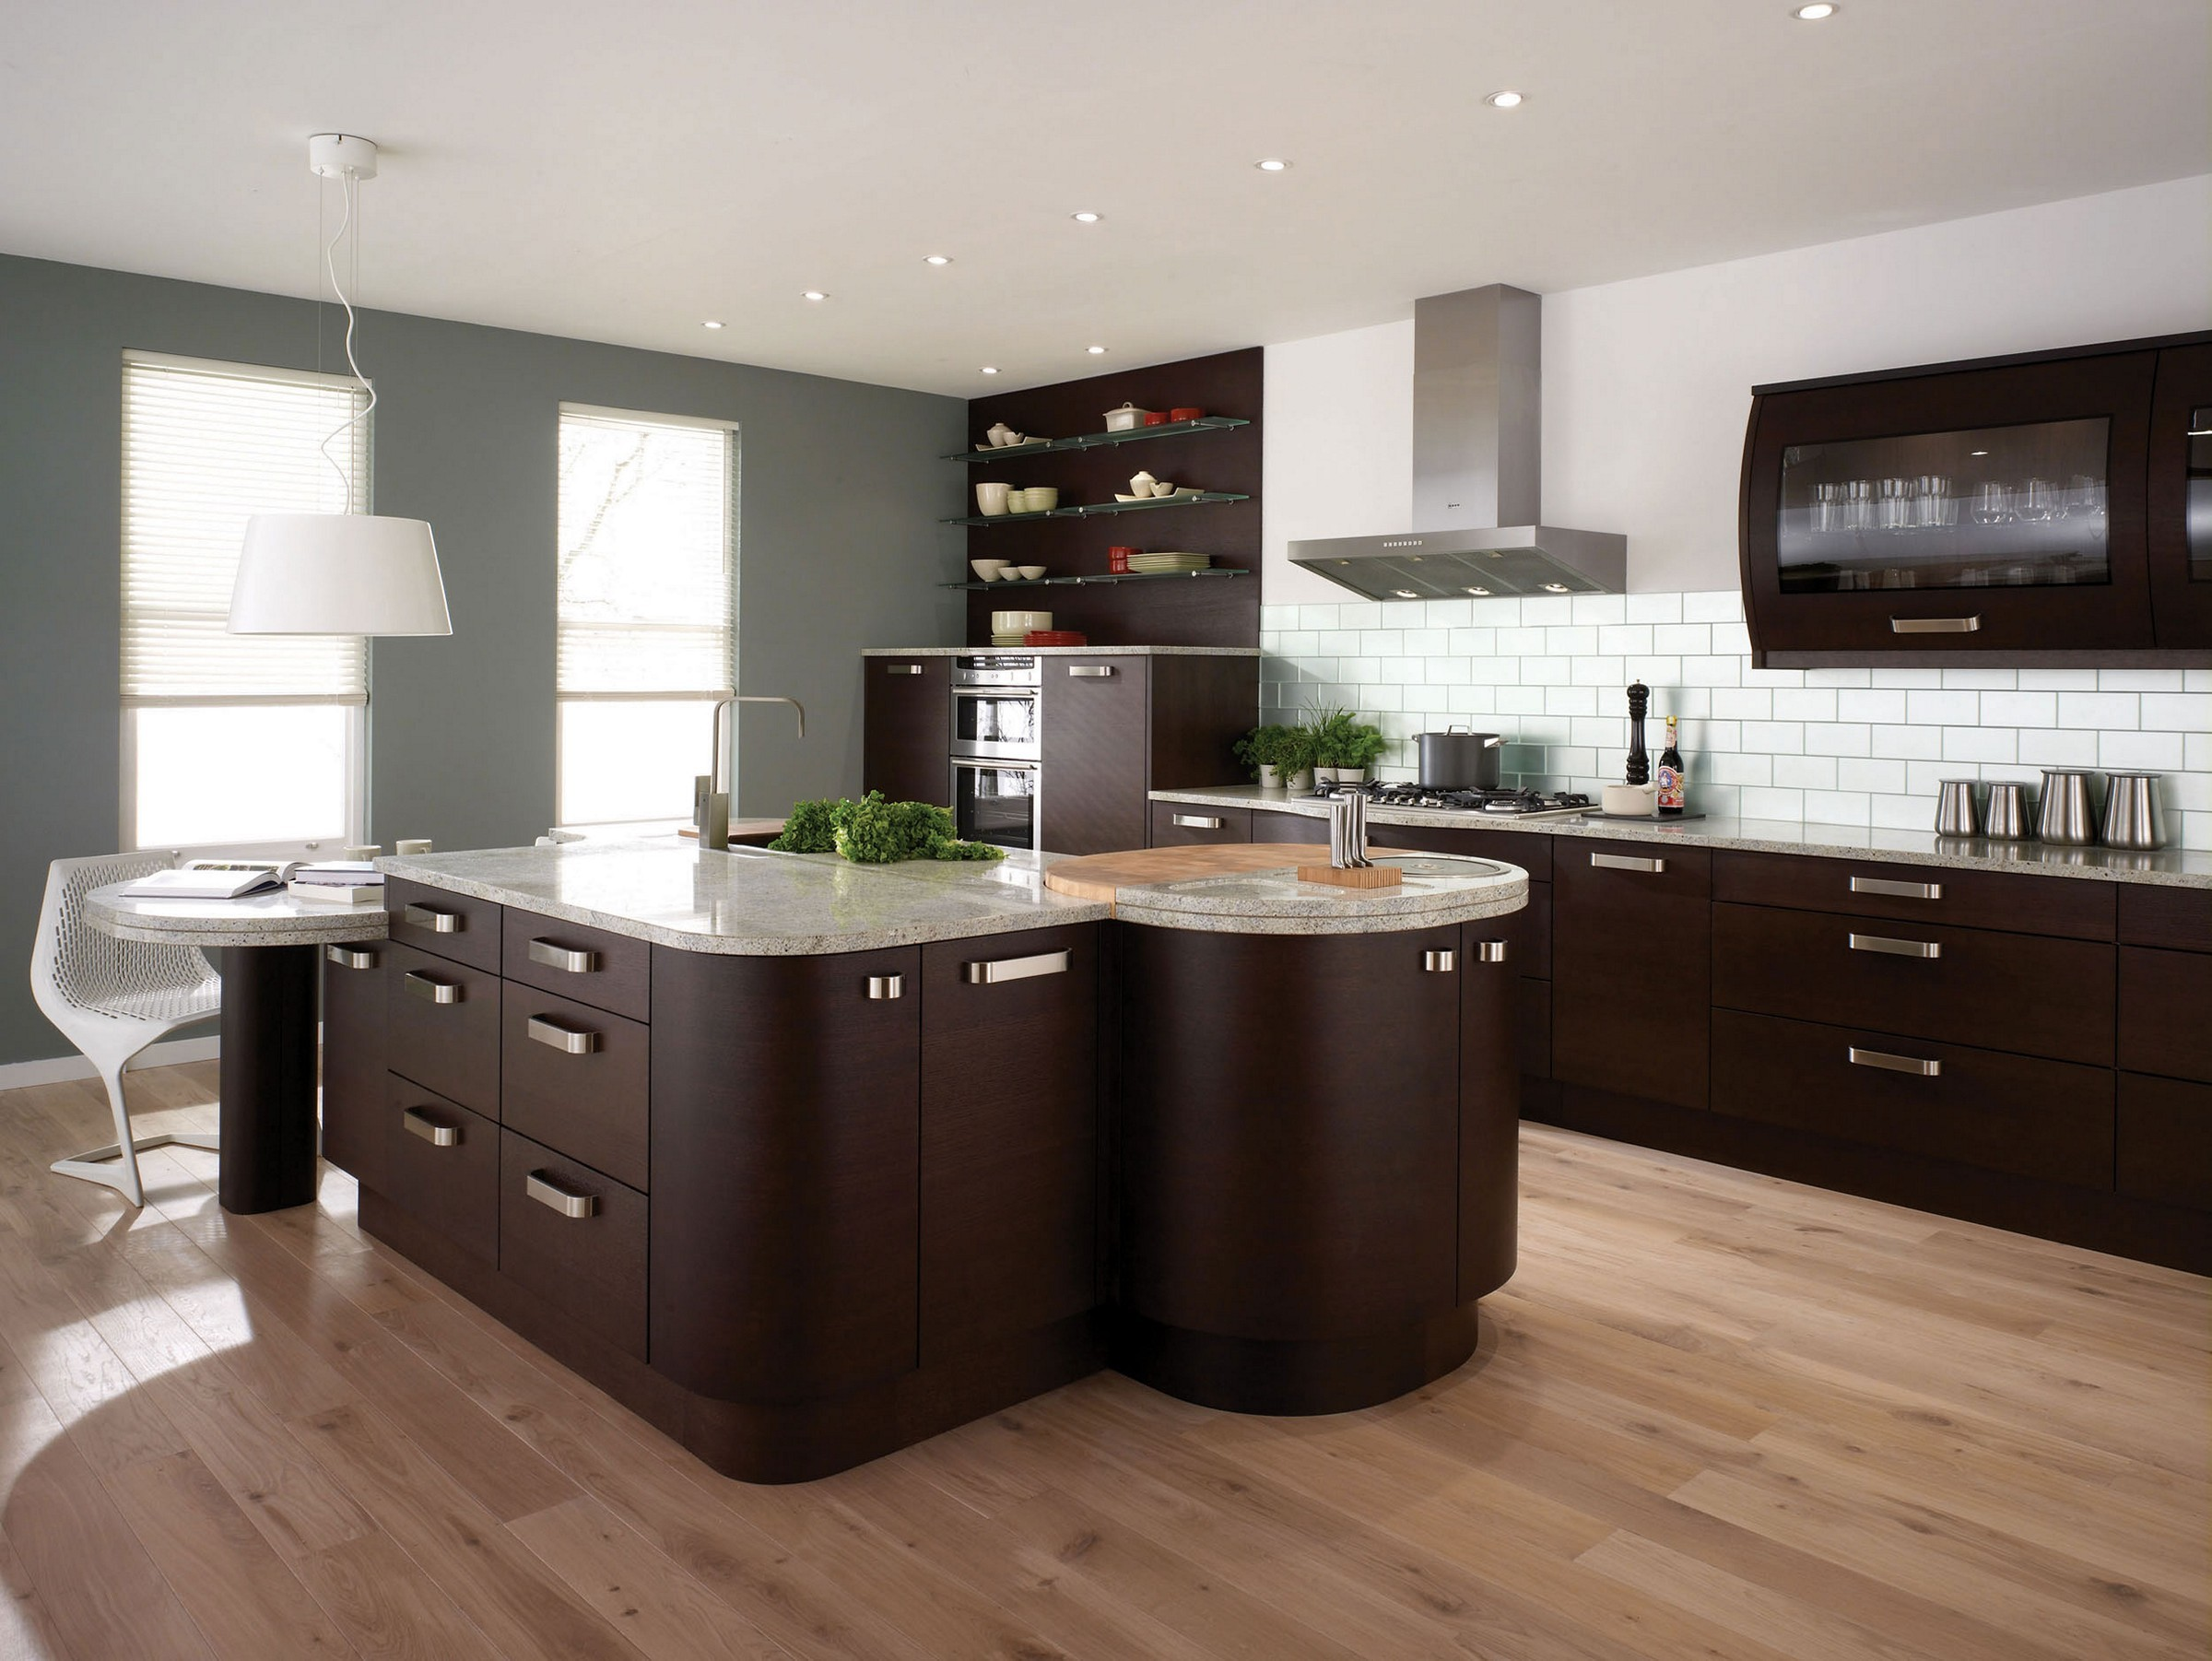 best paint color for kitchen with dark cabinets brown cupboards espresso XOHGIHT